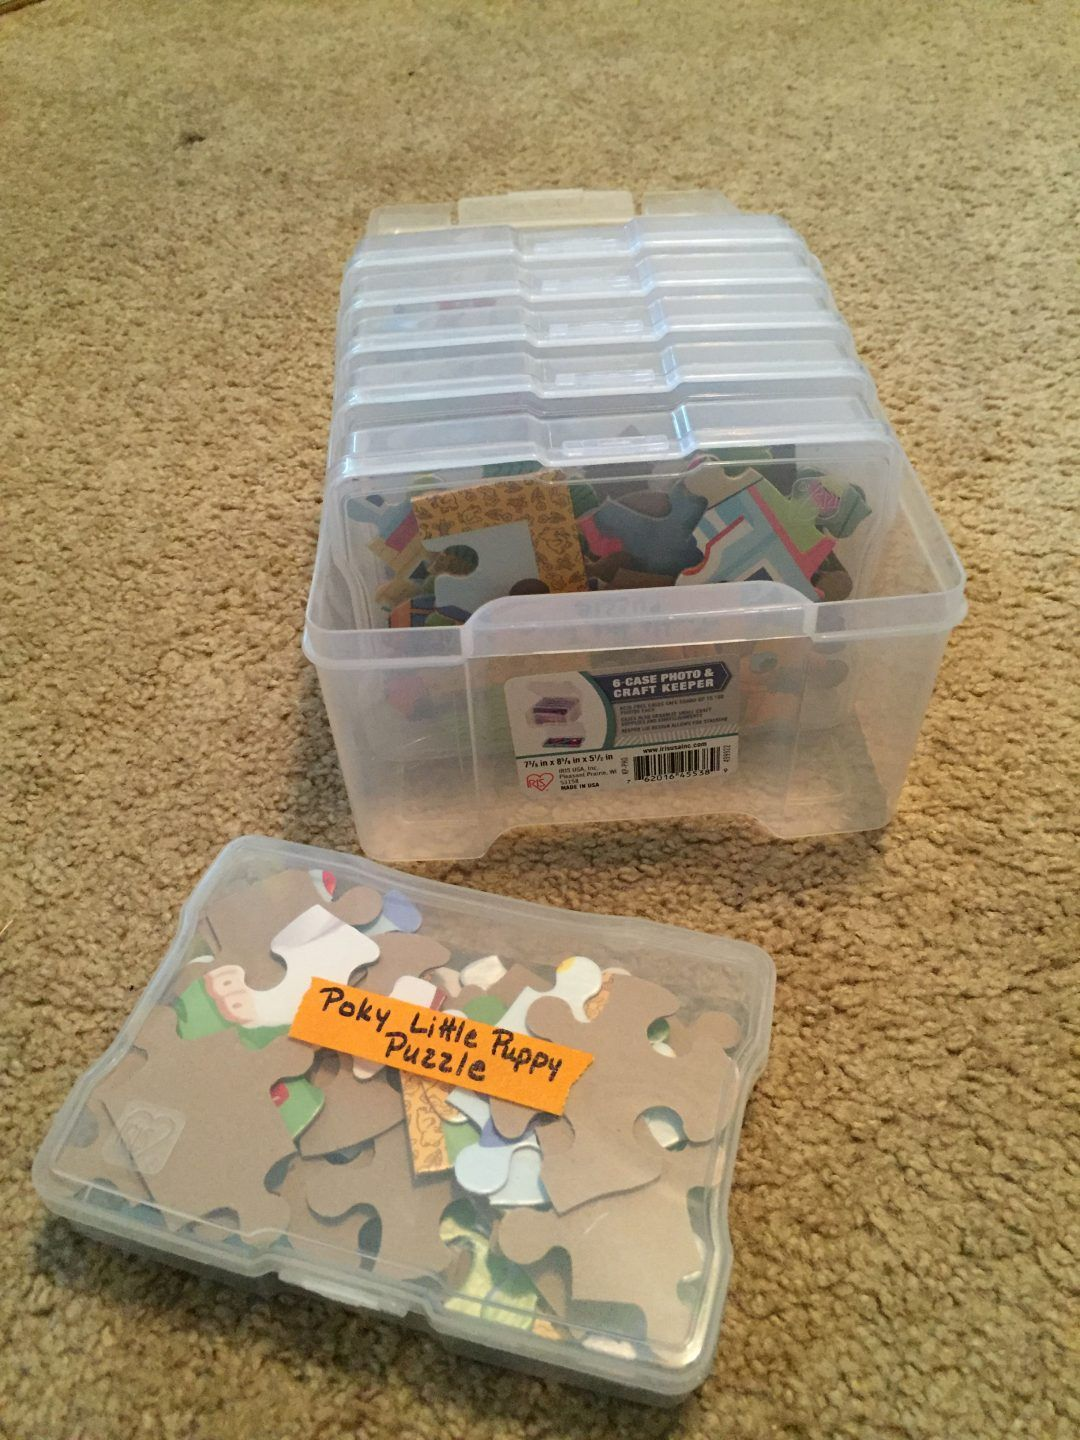 Compact Storage for Jigsaw Puzzles - The Organized Mom